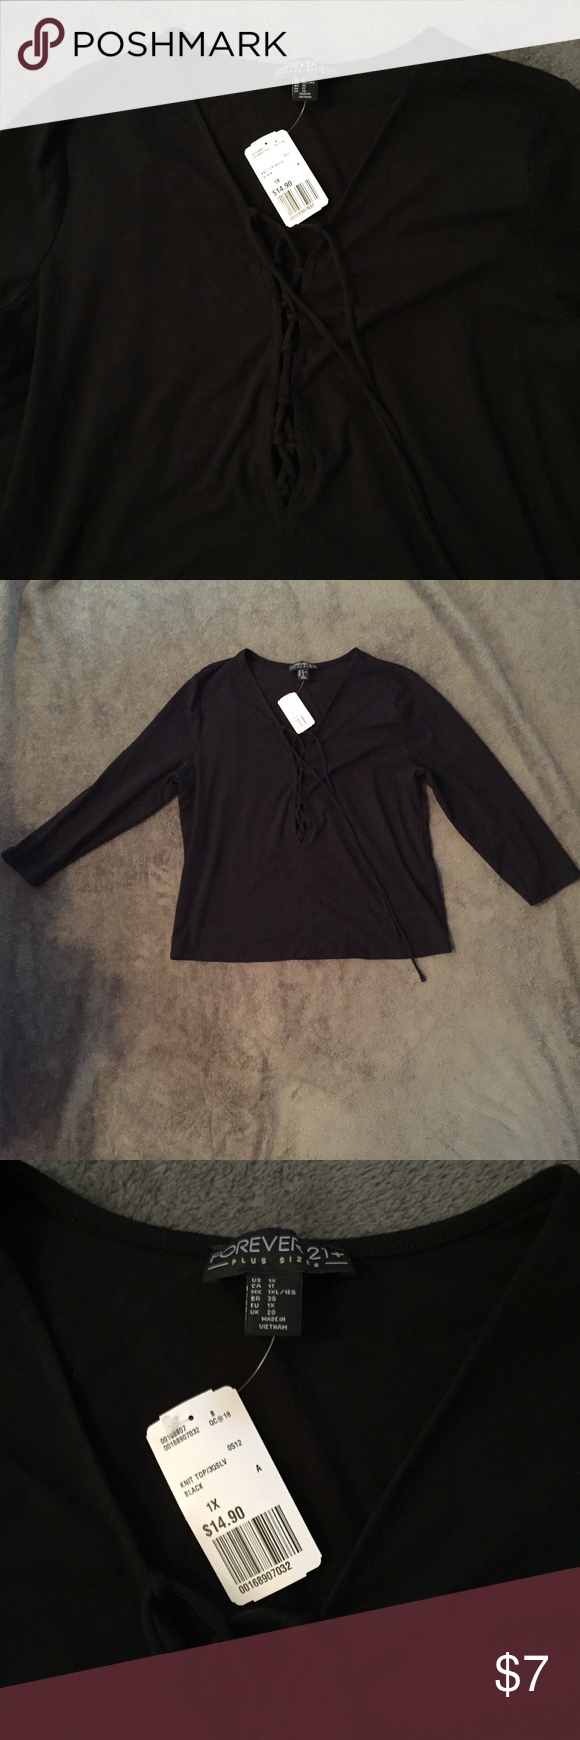 Forever 21 Plus Lace Up Top Recently purchased here on Poshmark! Everything was great, just the lace up open detail on the shirt goes lower than I'd like. Great for a night out! Forever 21 Tops